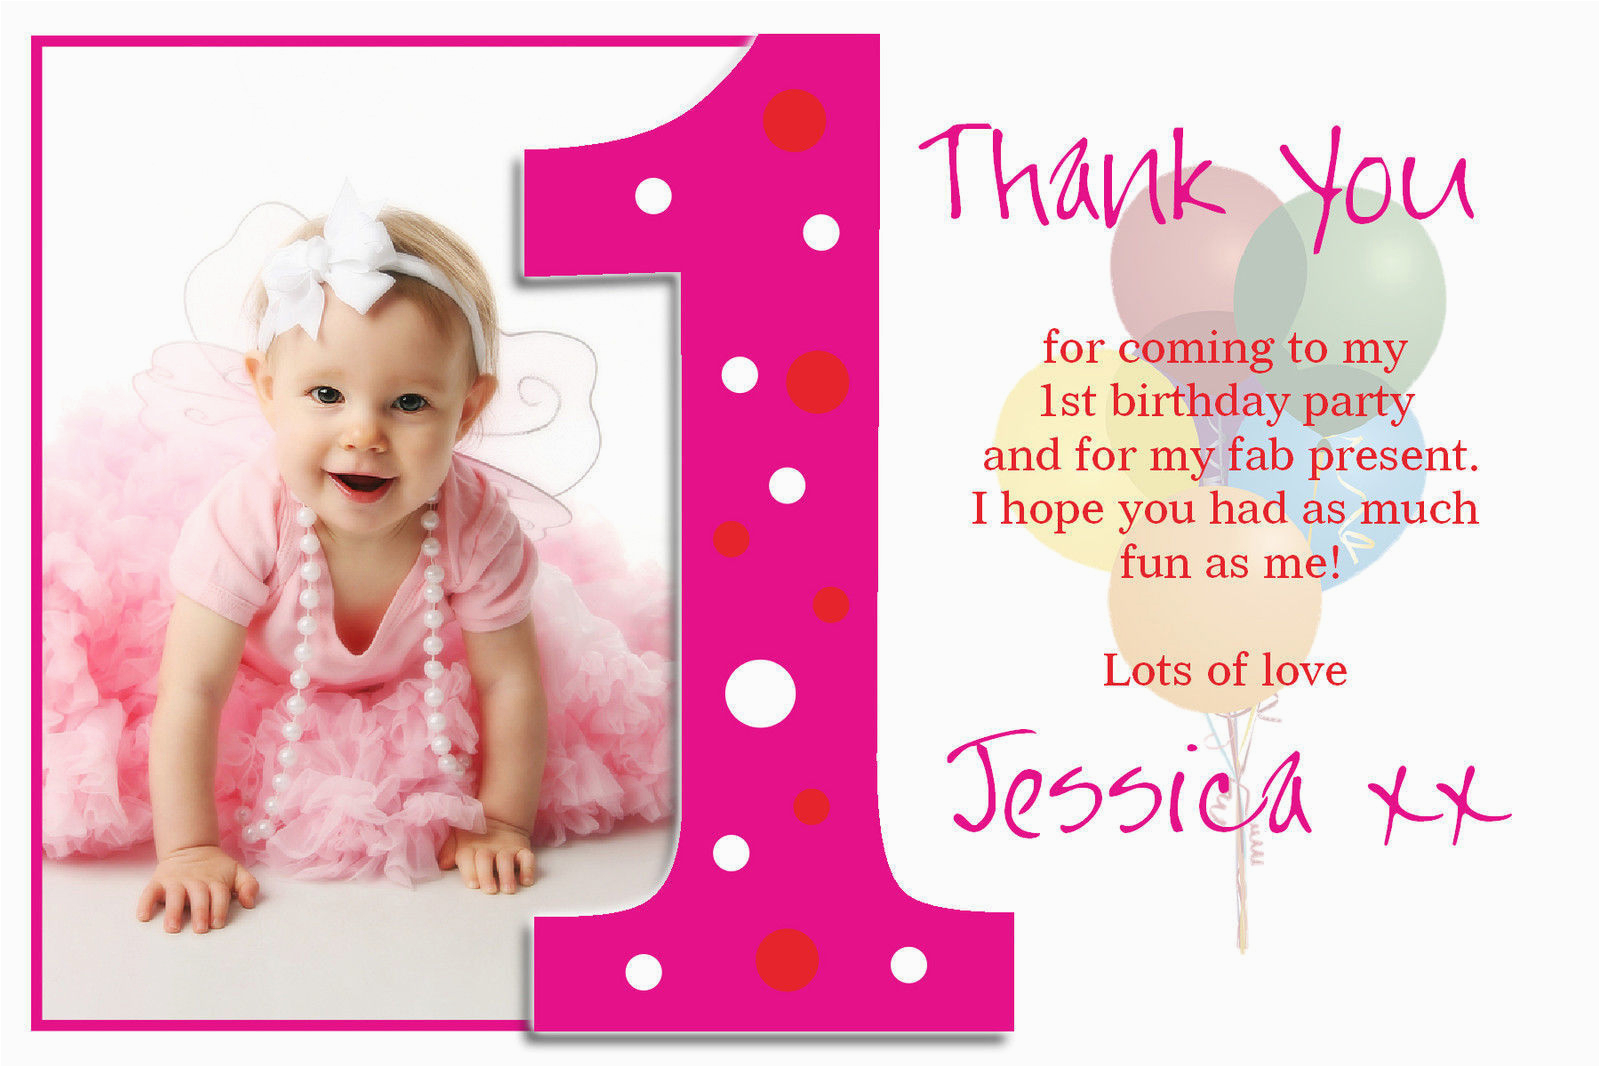 Thank You Card after Birthday Party Birthday Thank You Cards Regarding Ucwords Card Design